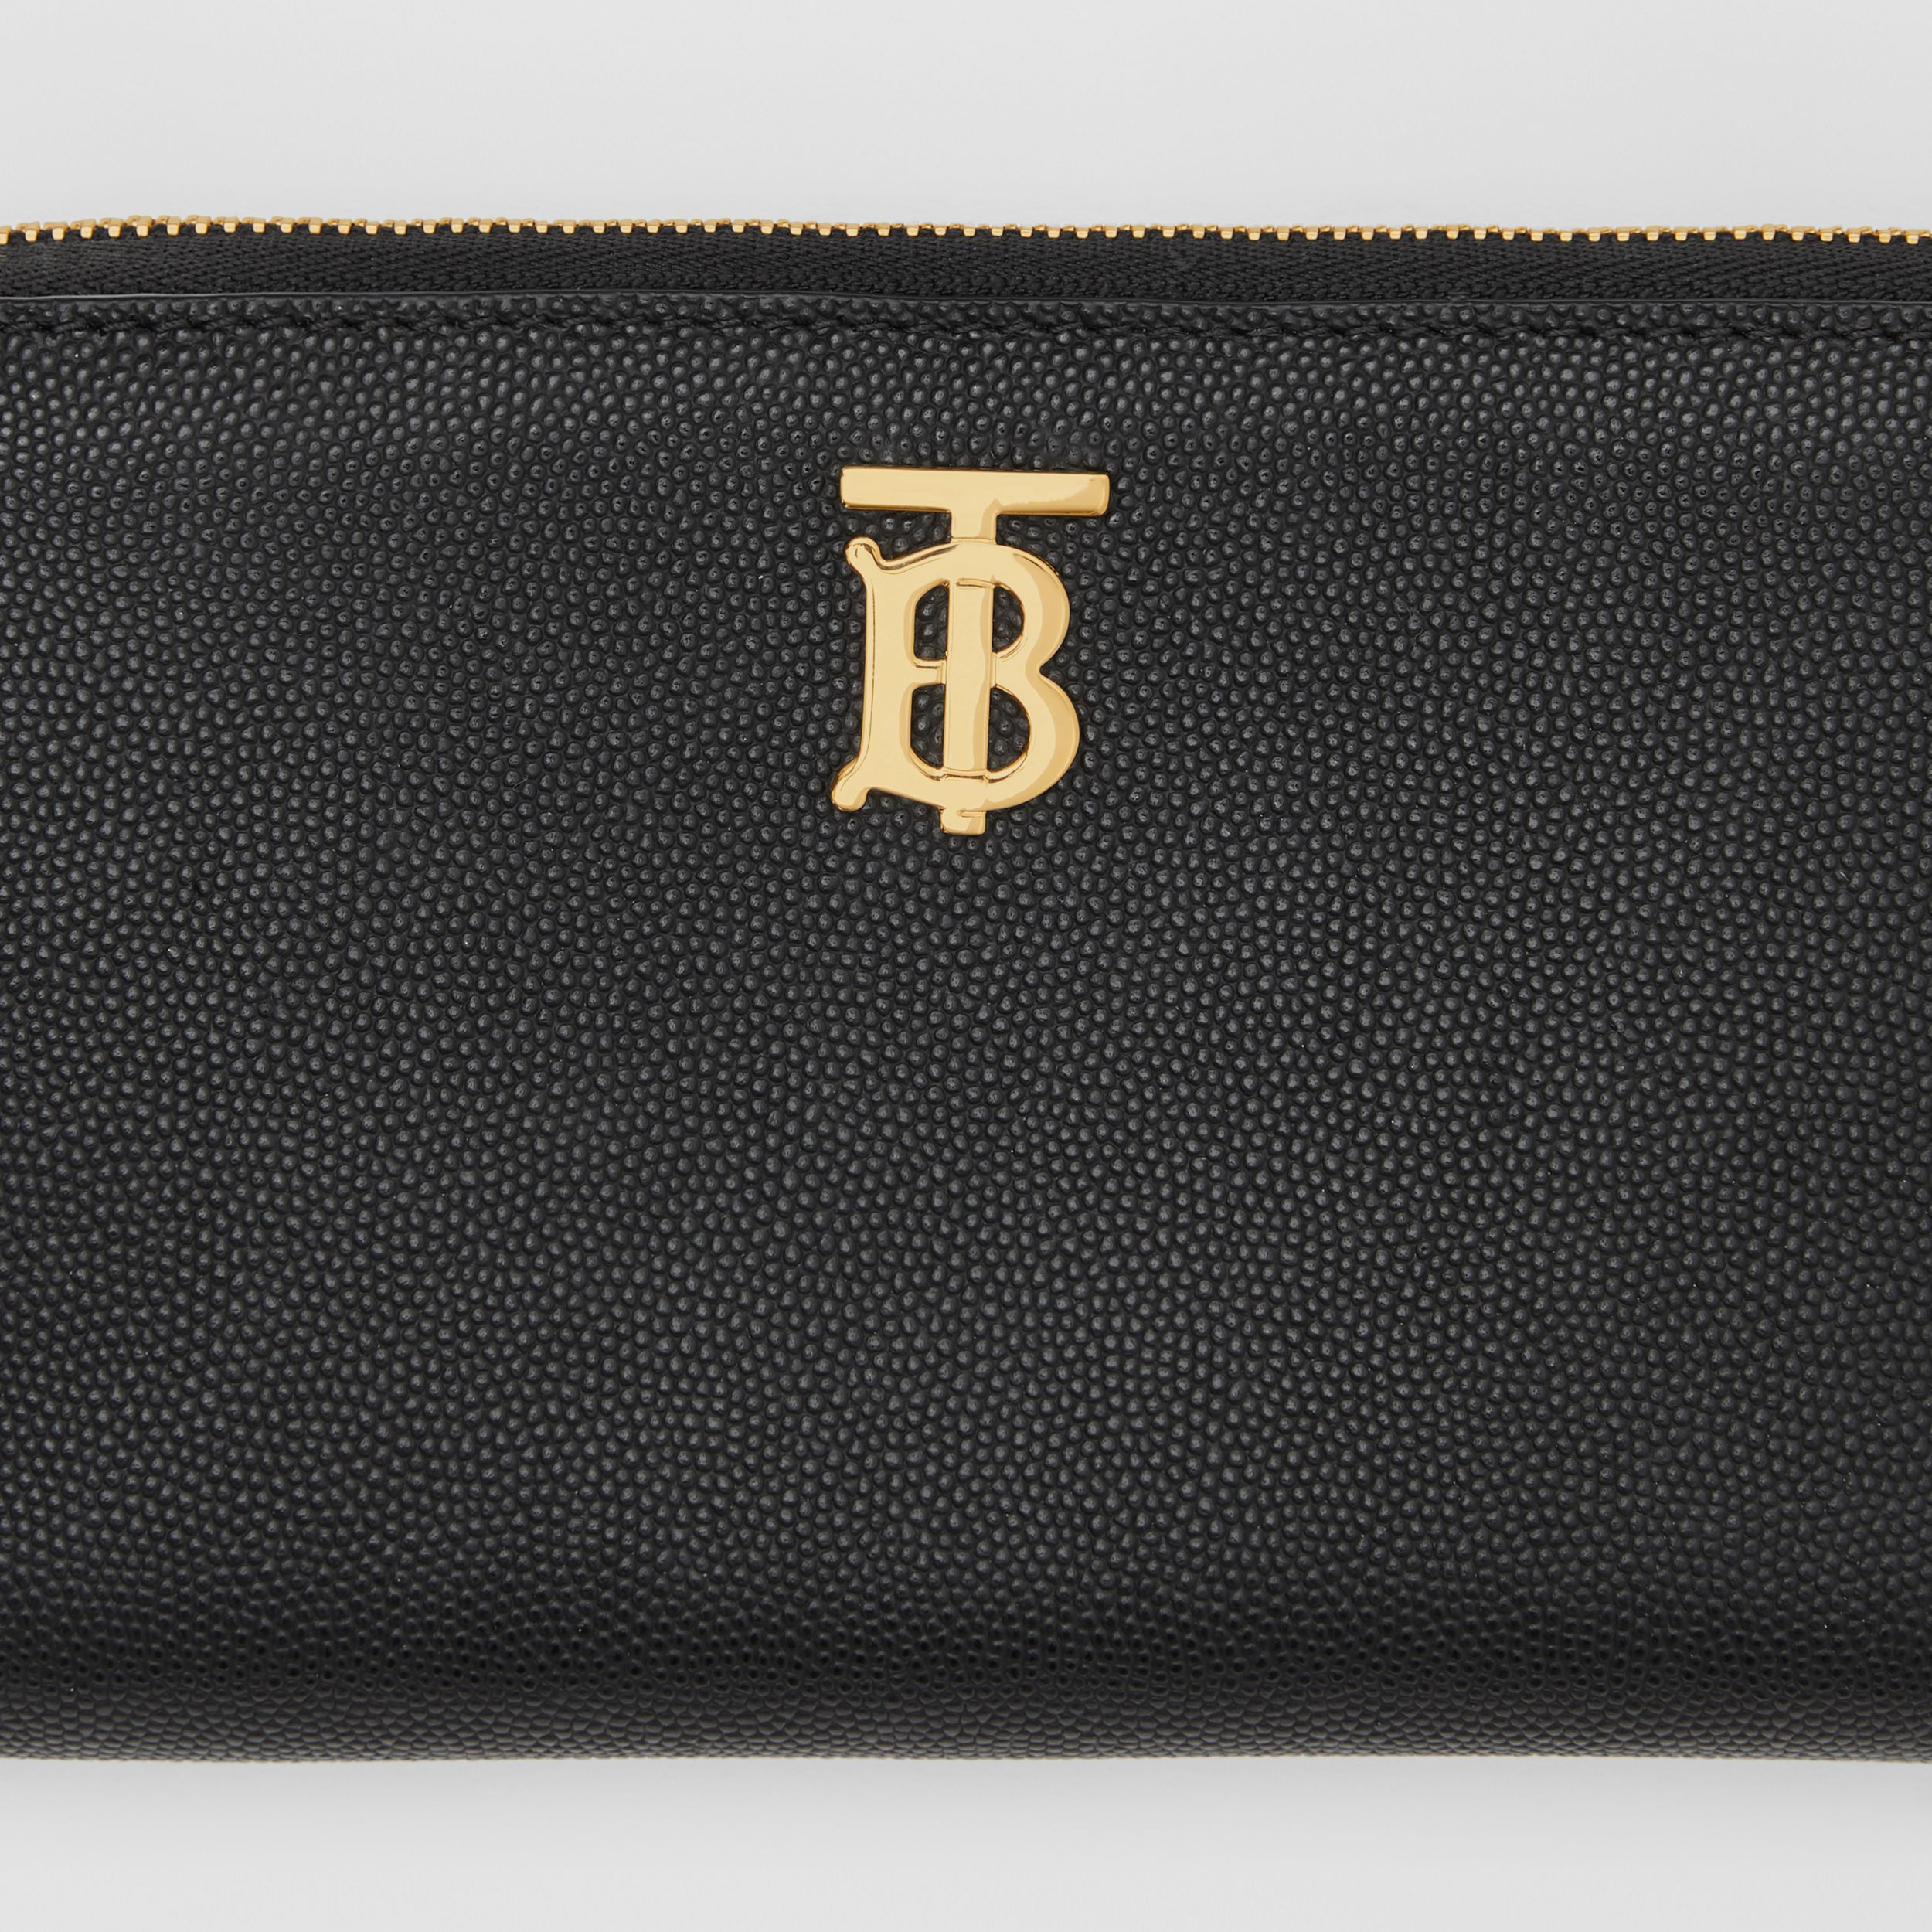 Monogram Motif Grainy Leather Ziparound Wallet in Black - Women | Burberry United States - 2